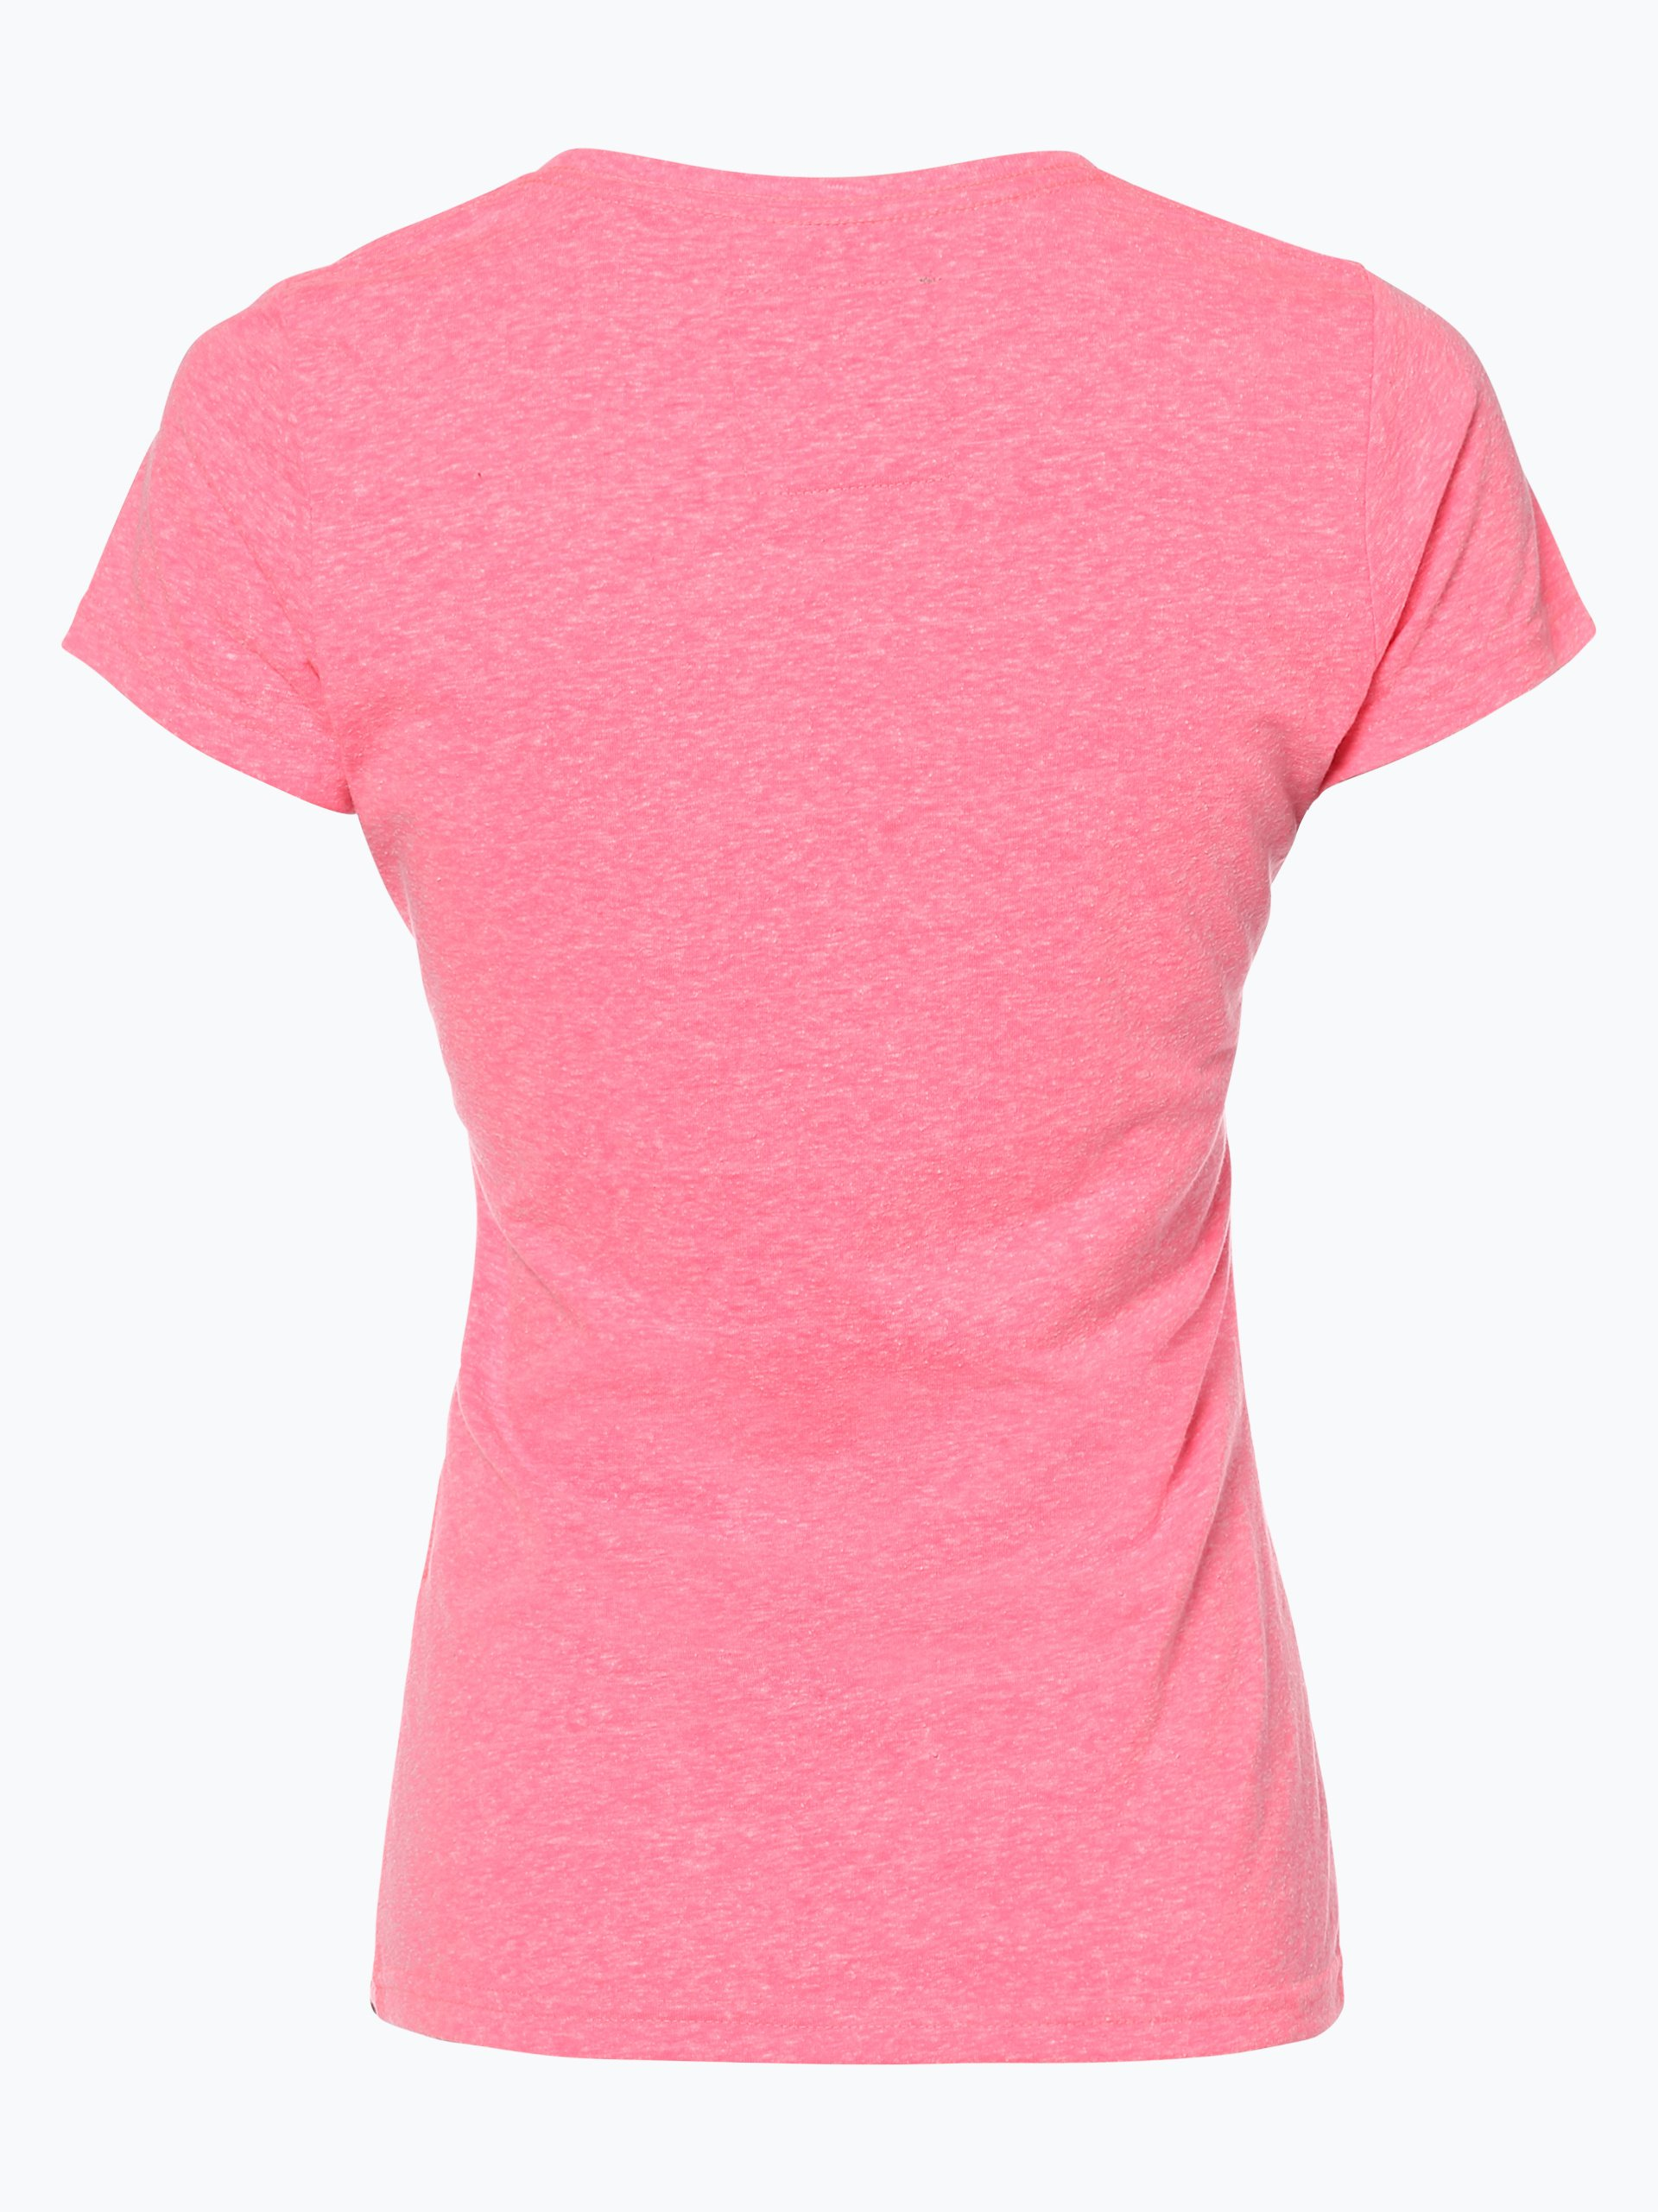 superdry damen t shirt pink uni online kaufen vangraaf com. Black Bedroom Furniture Sets. Home Design Ideas